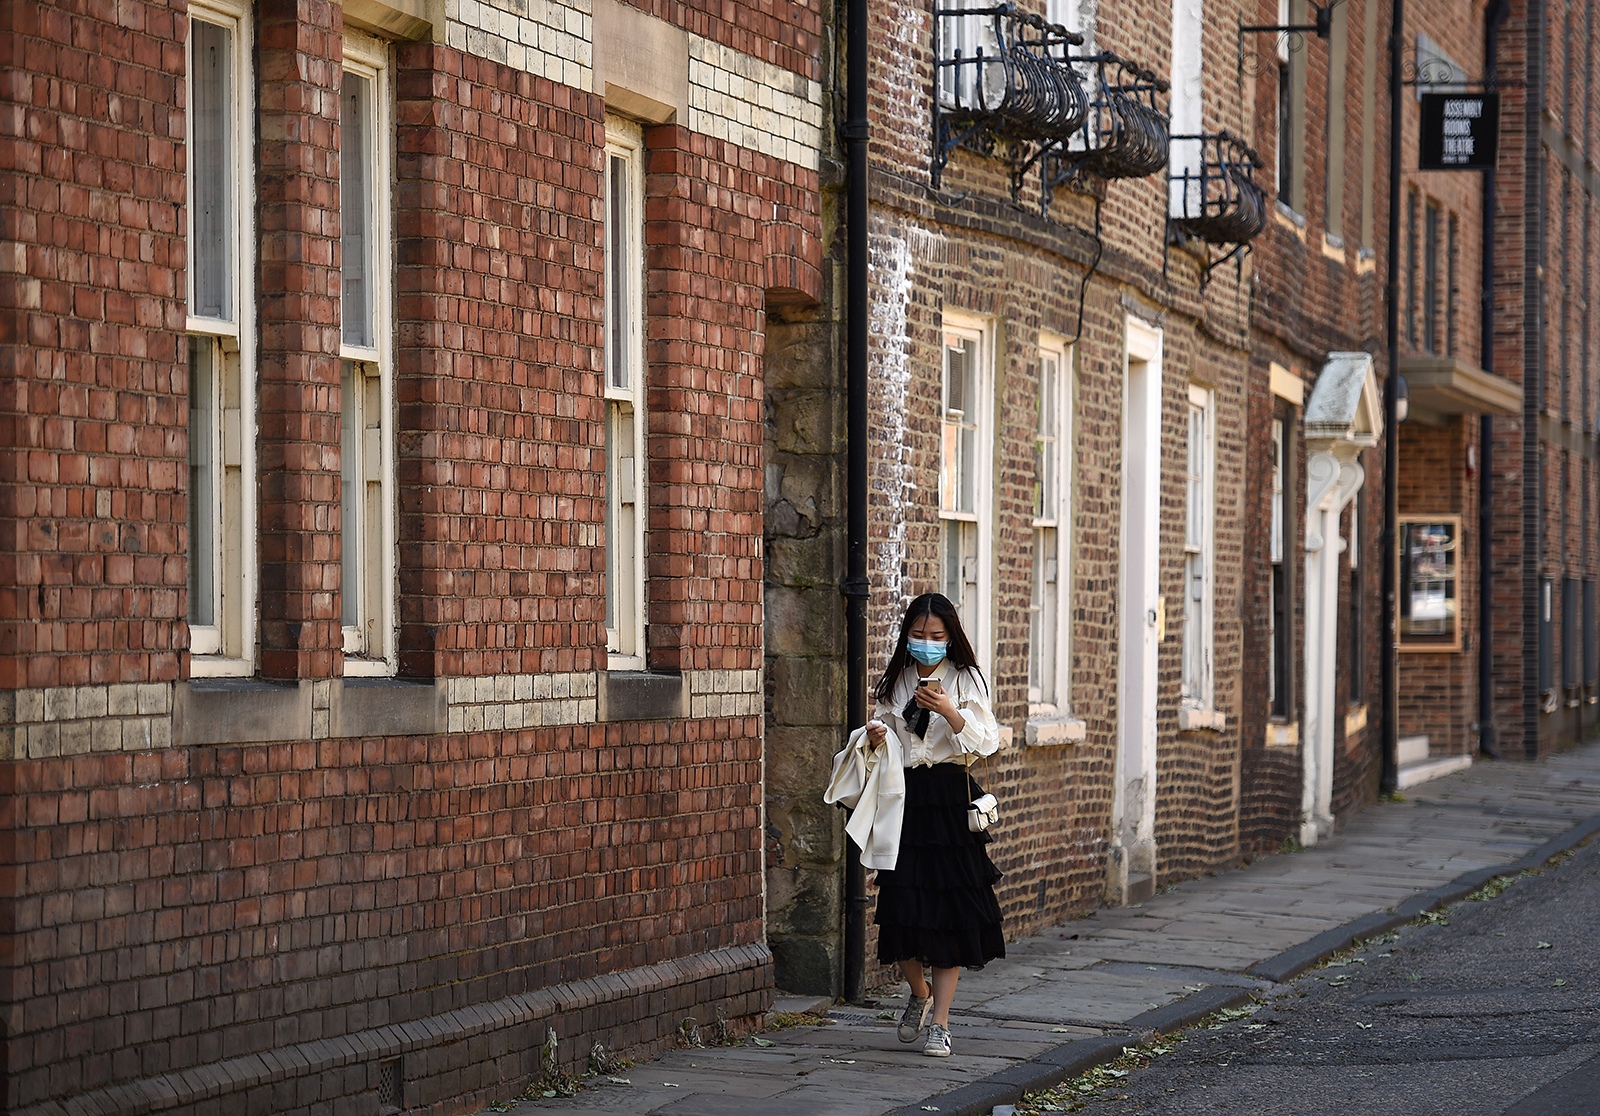 A woman wearing a face mask walks along a street in Durham, north east of England, on May 25.